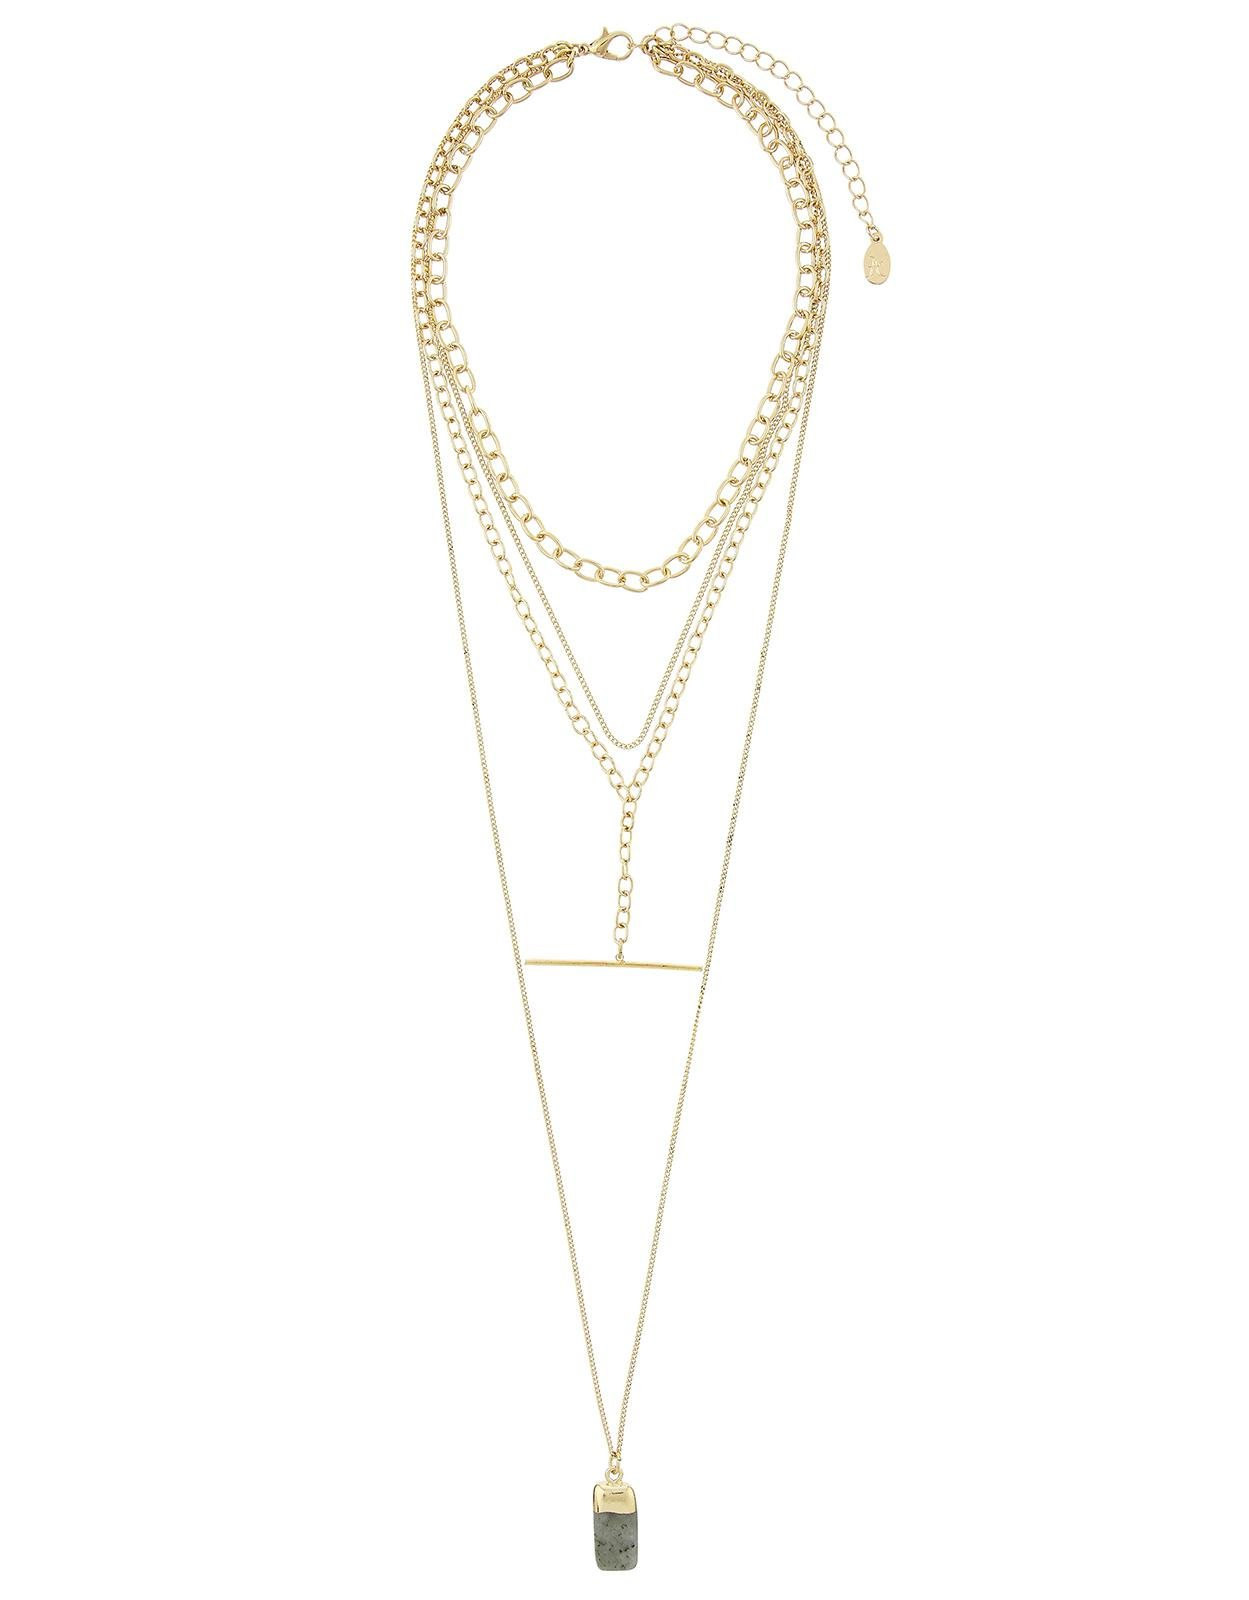 Accessorize Layered T Bar Long Pendant Necklace in Gold (Metallic)